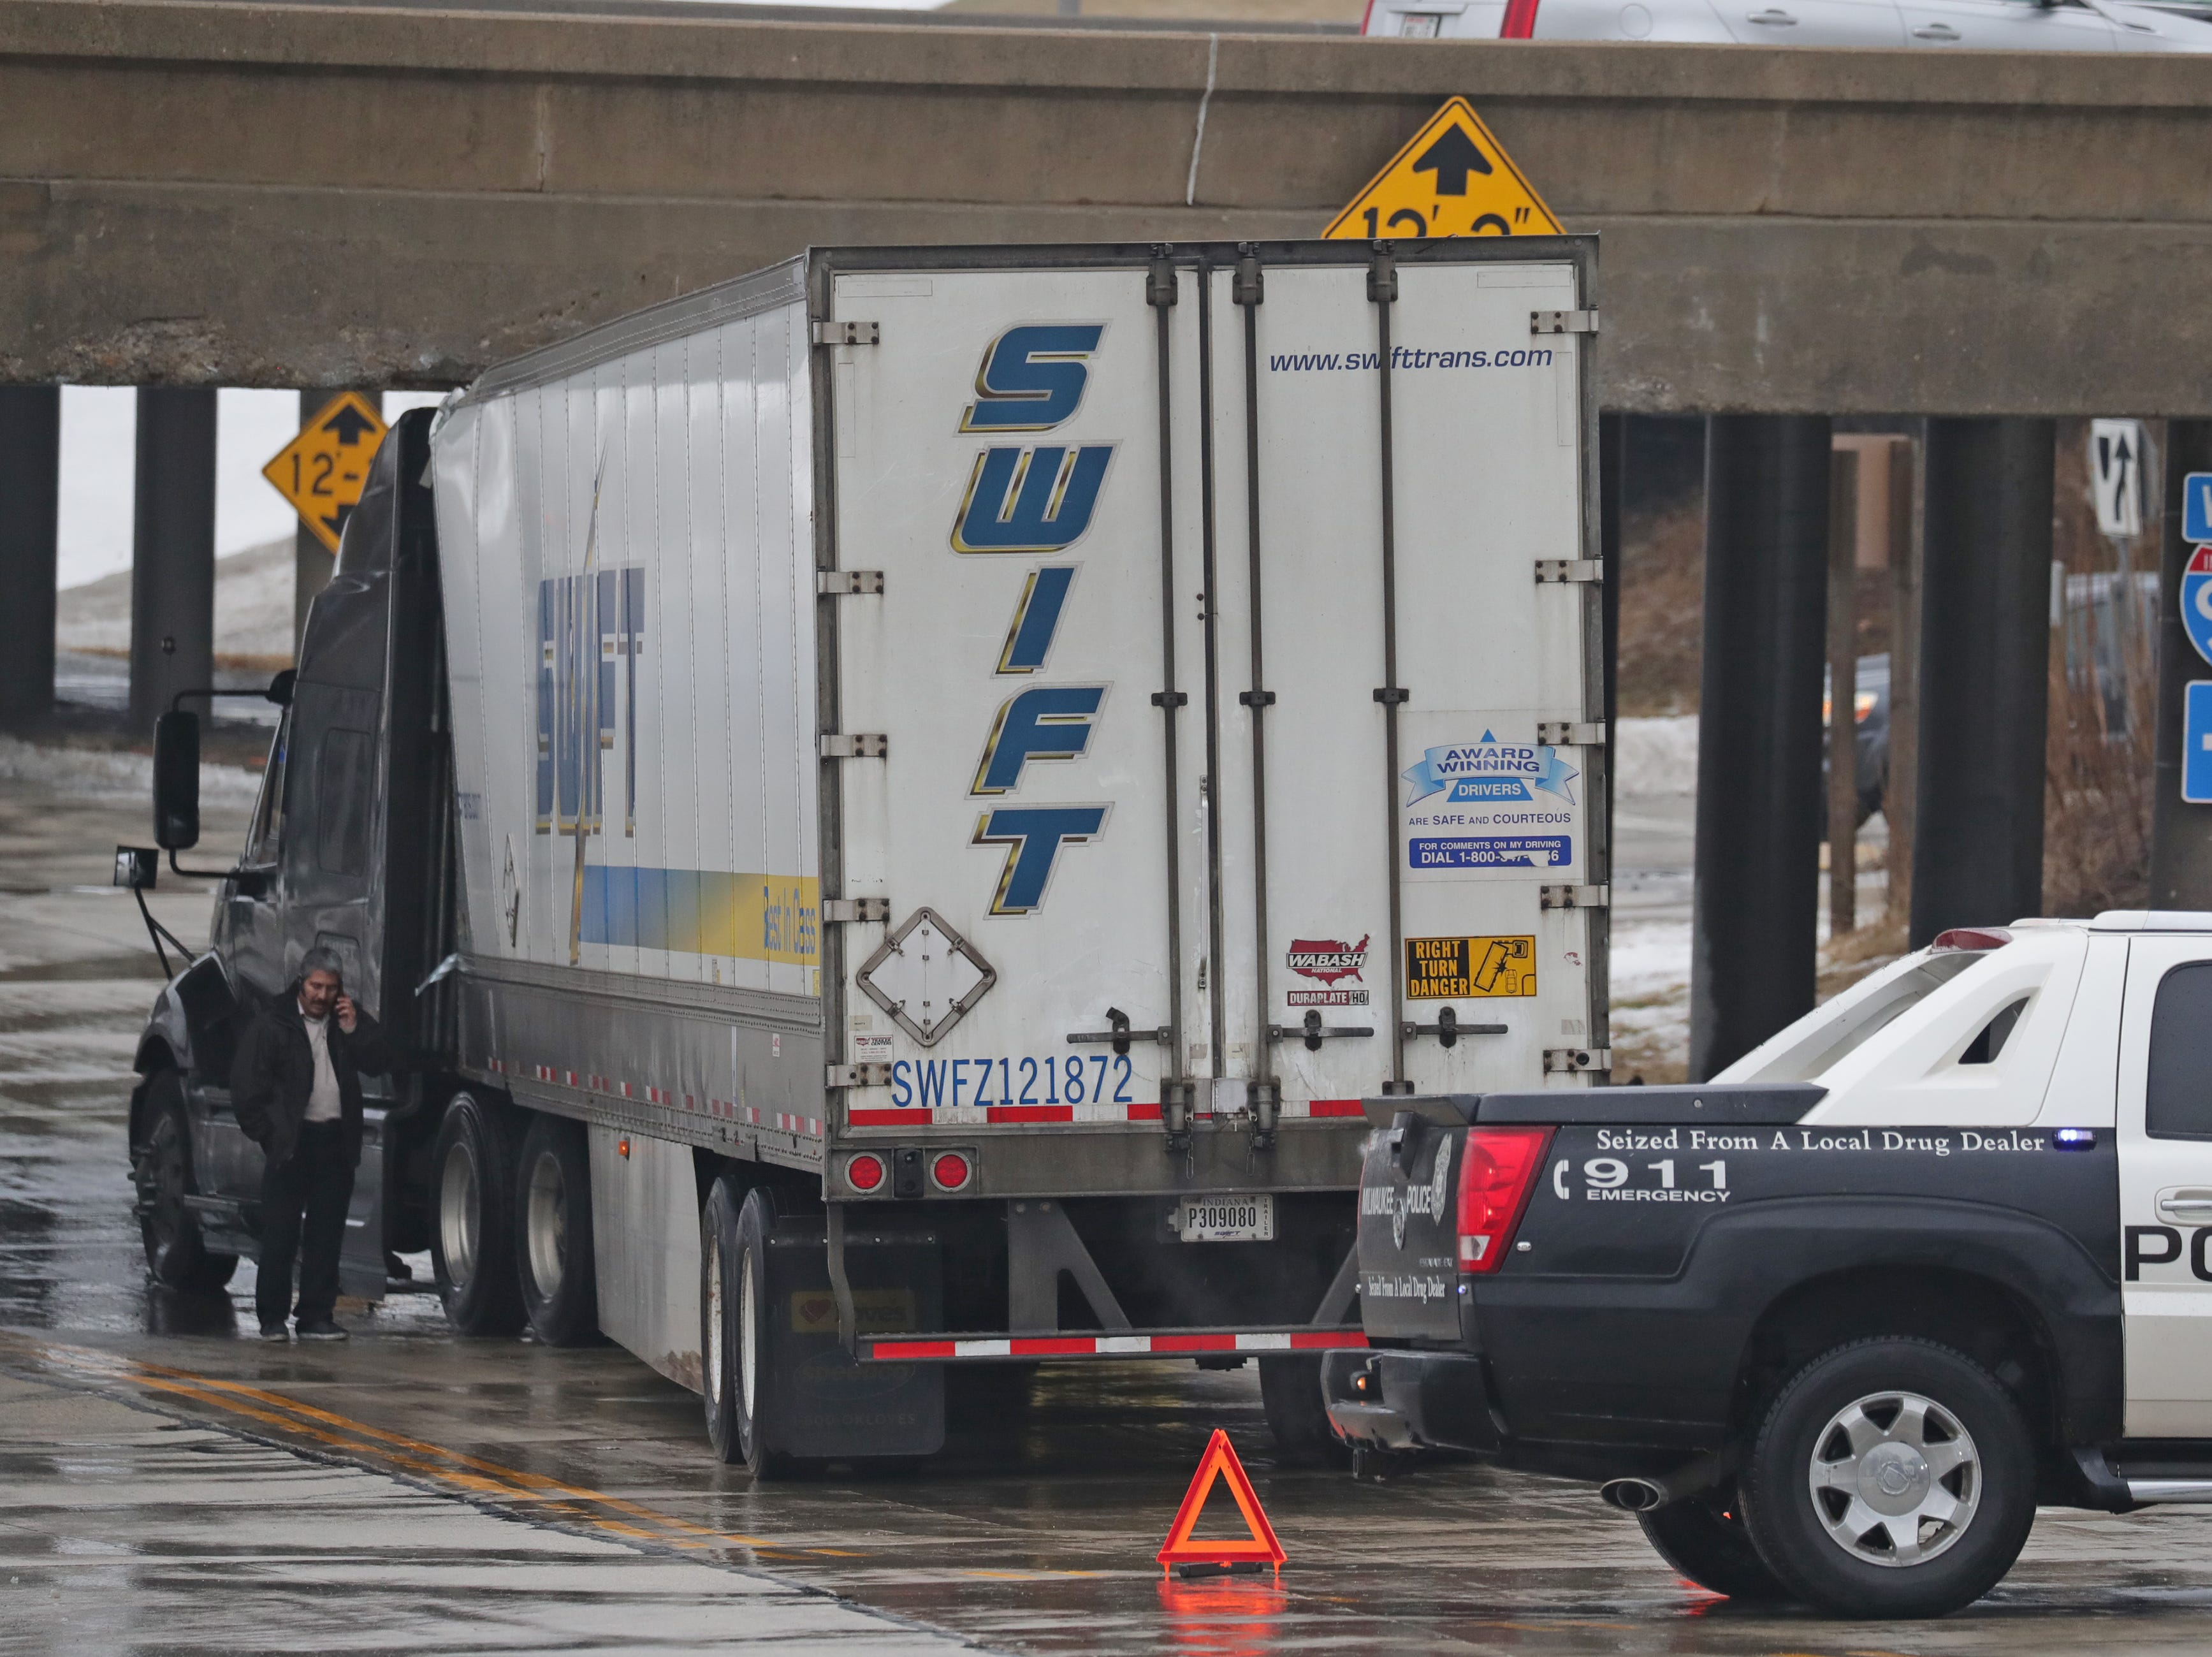 A truck driver talks on his phone as his semi truck is stuck under the I-94 bridge on General Mitchell Boulevard in Milwaukee on Monday. The trailer was empty. It's the second truck to be stuck in the last three weeks as a truck full of Pabst Blue Ribbon beer was lodged under bridge just last month on January 15.